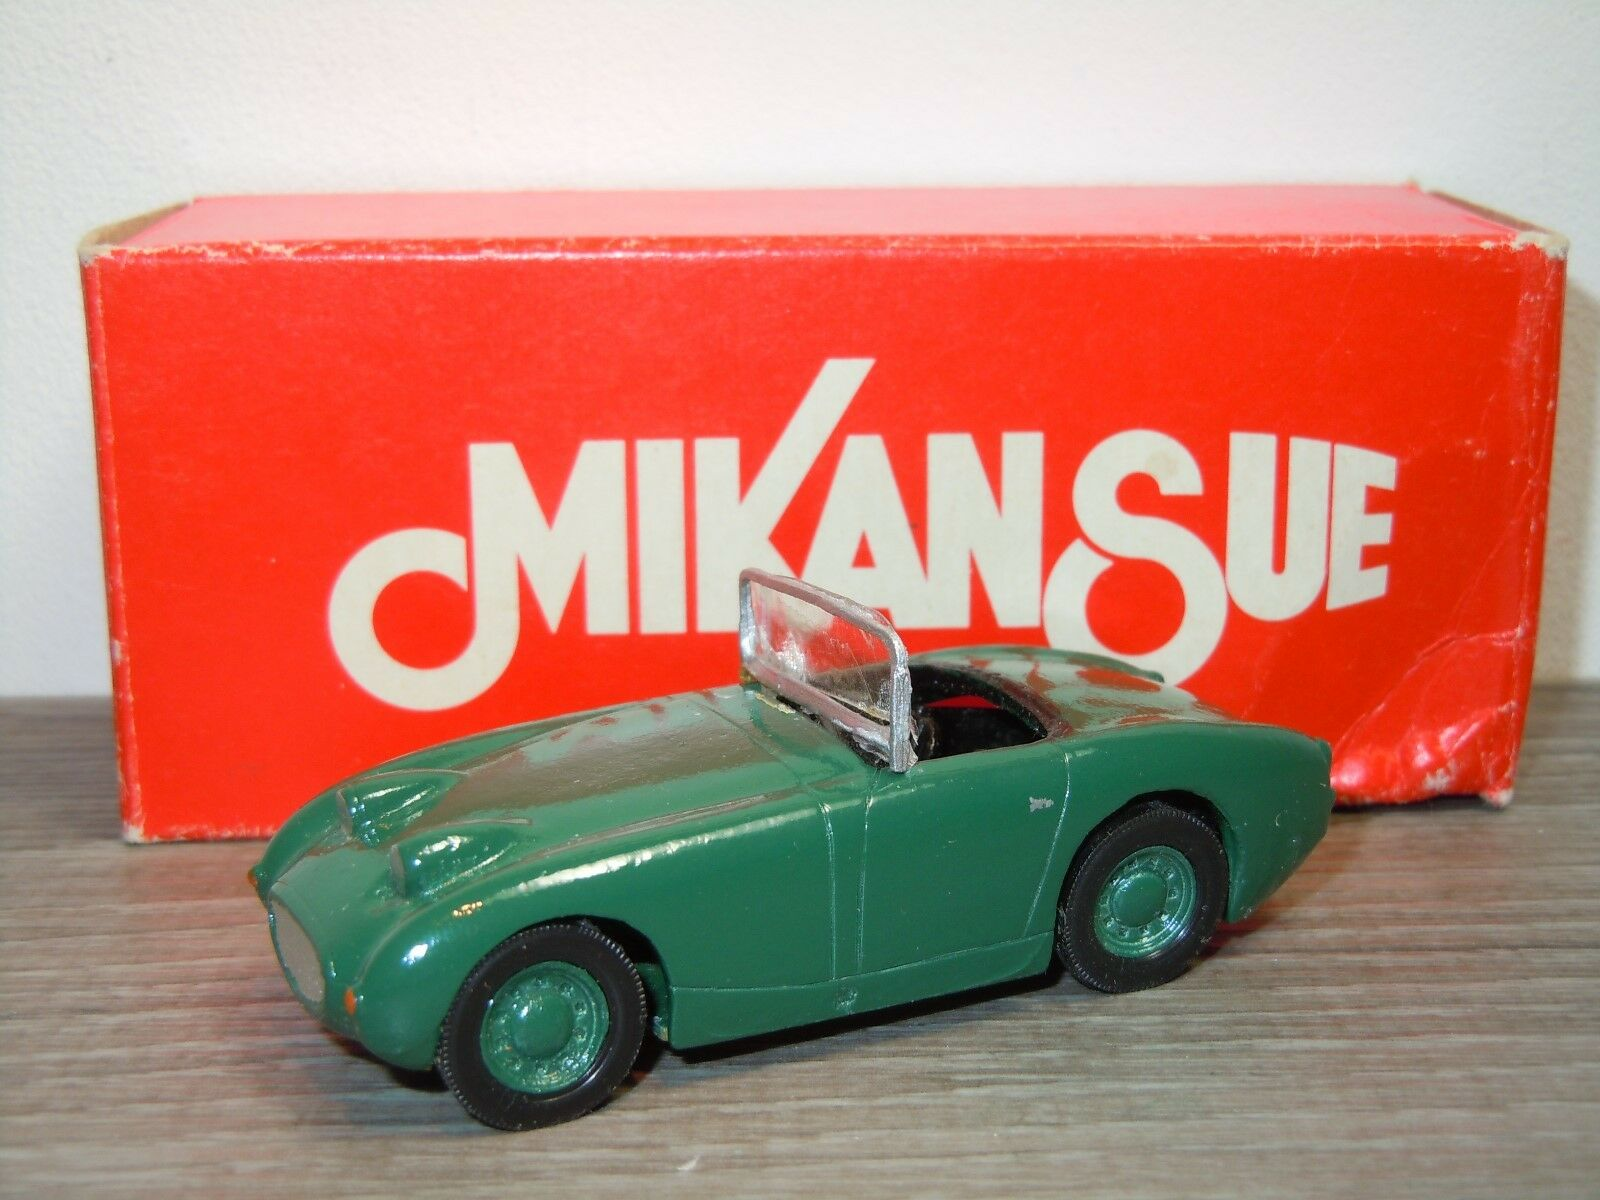 1958 Austin Healey Sprite - Mikansue 1 43 in Box 34300